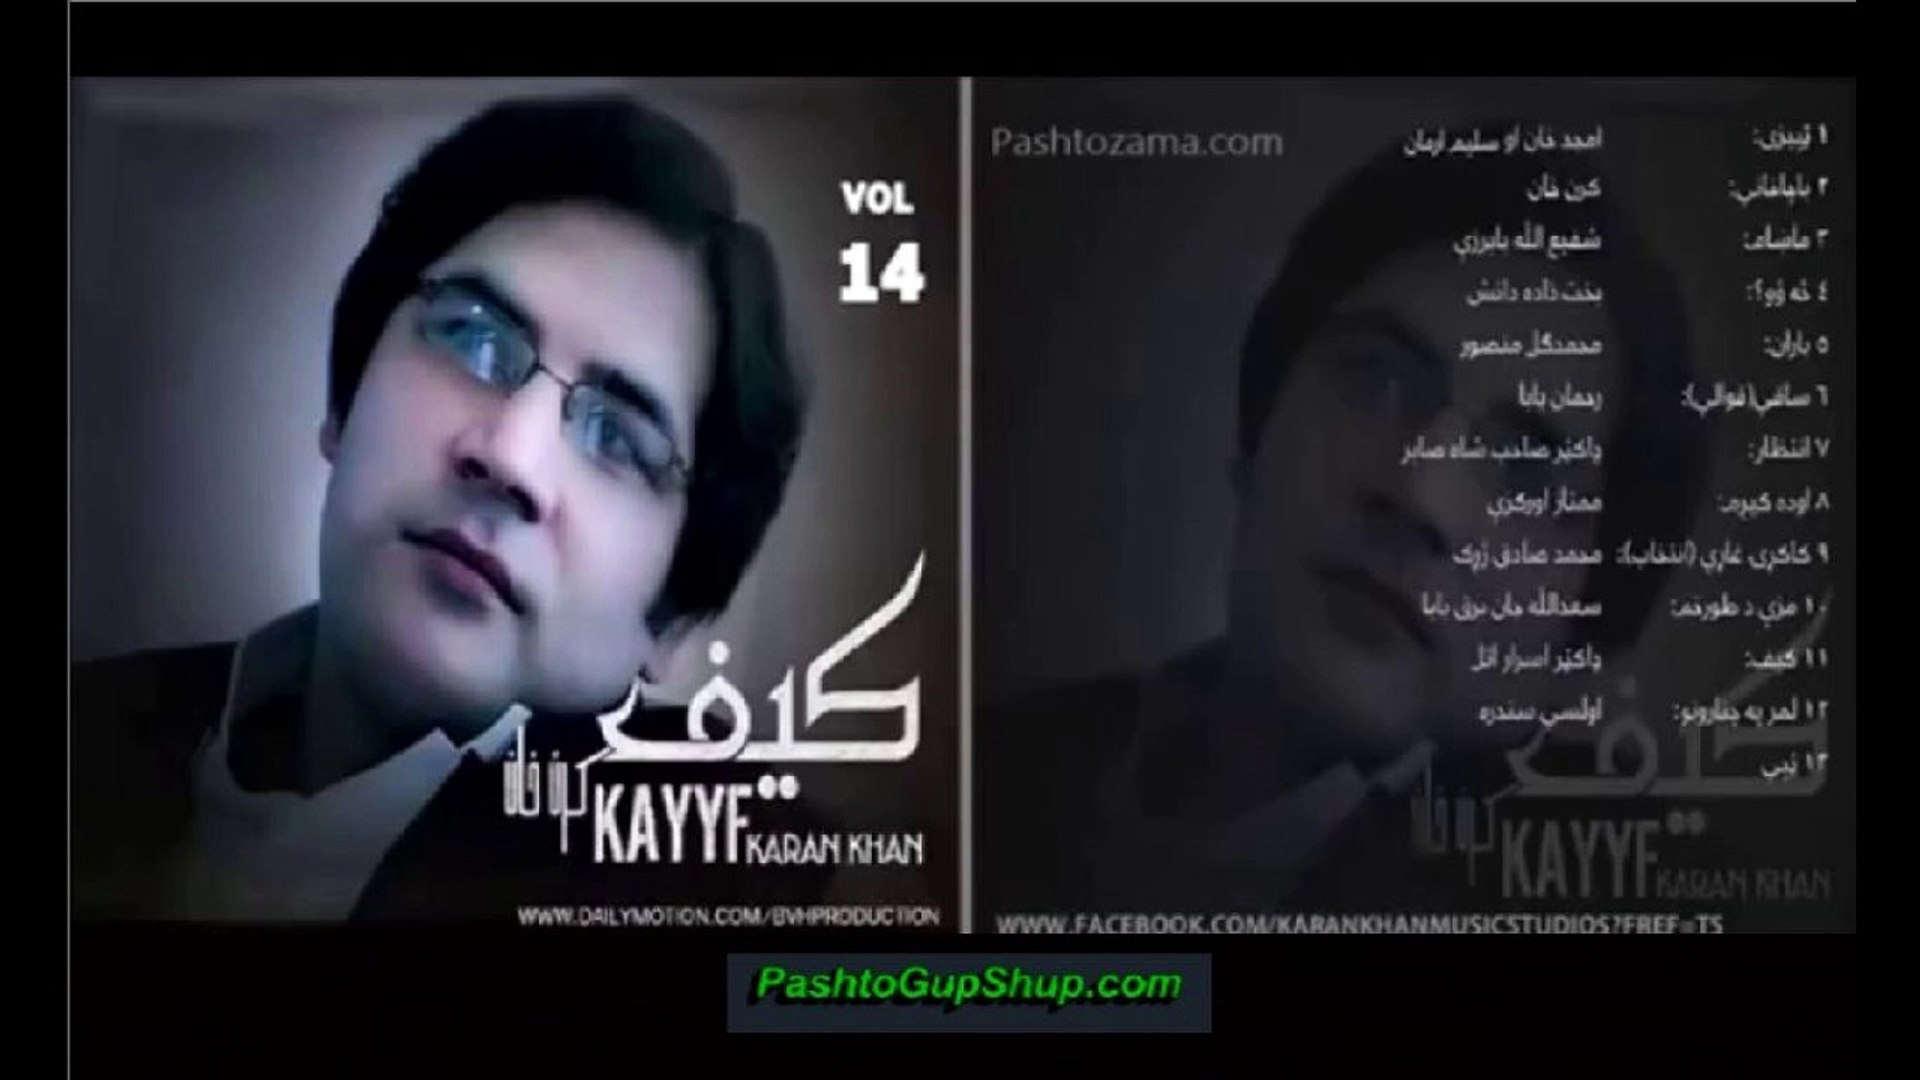 kayyf album mp3